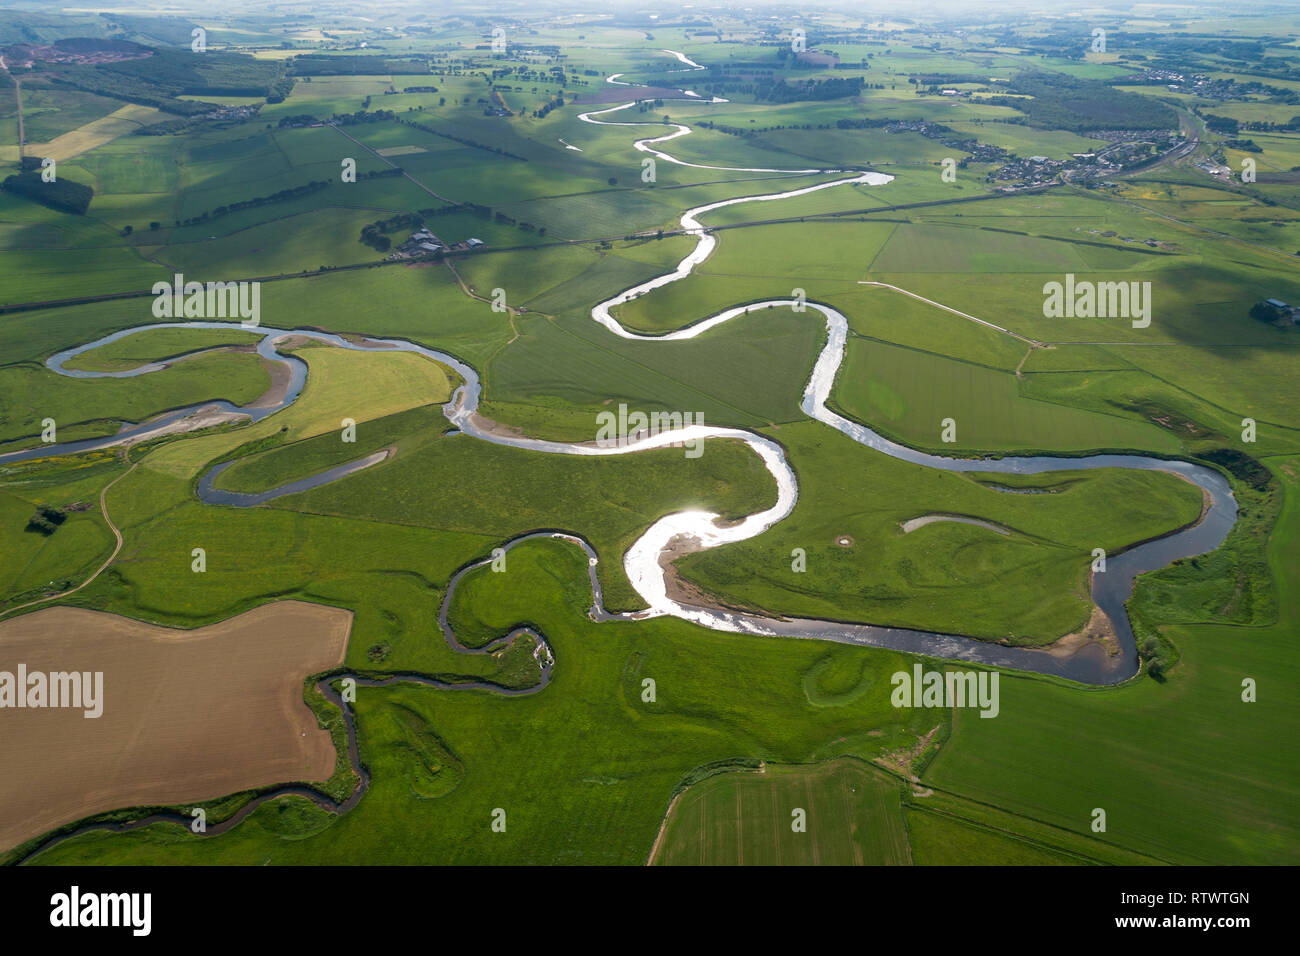 Aerial image showing the River Clyde in Oxbow formations near the village of Carnwath in South Lanarkshire, Scotland. - Stock Image